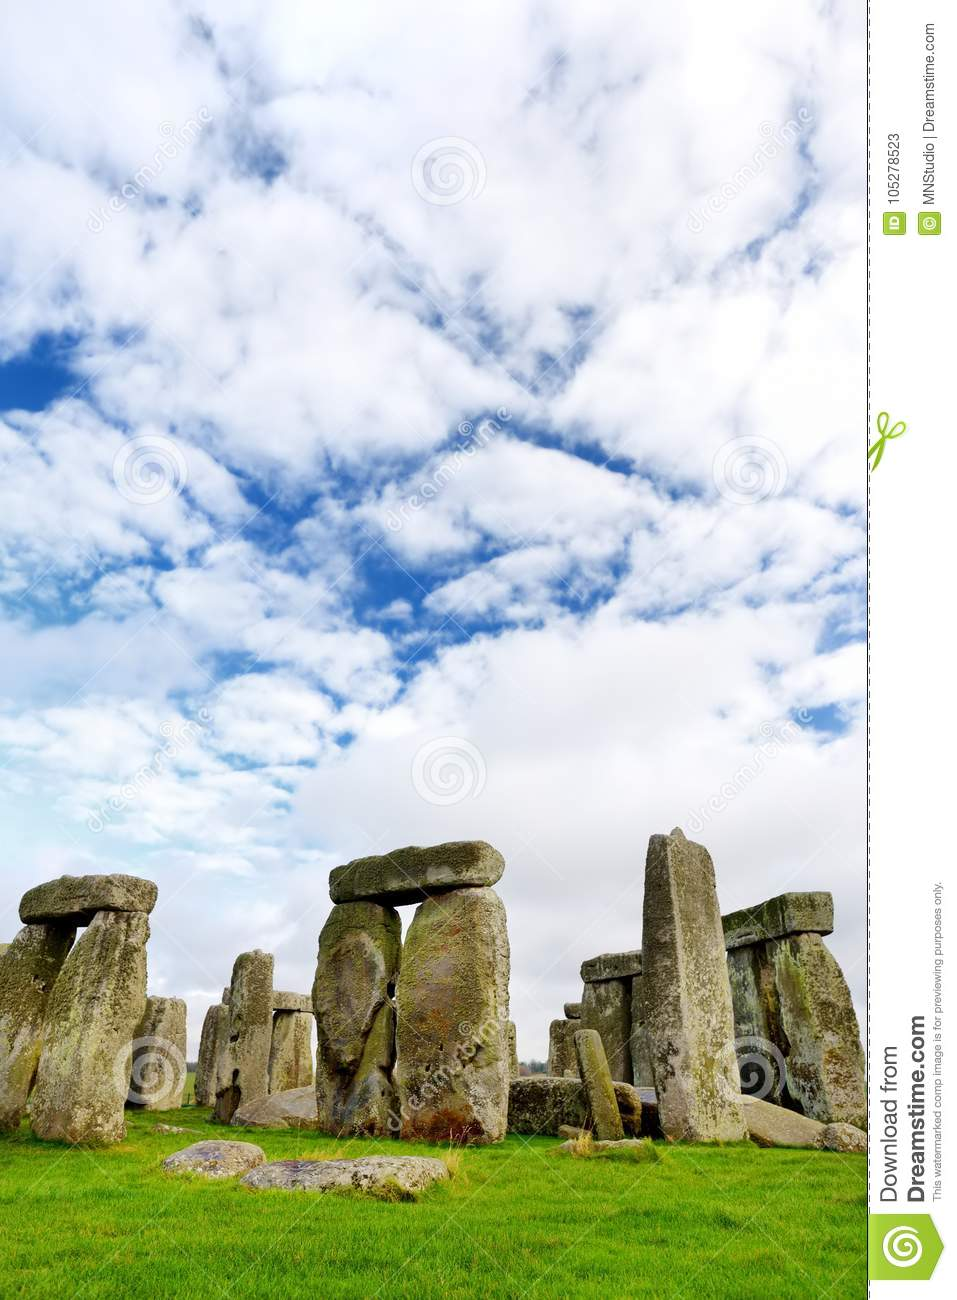 Stonehenge, one of the wonders of the world and the best-known prehistoric monument in Europe, located in Wiltshire, England